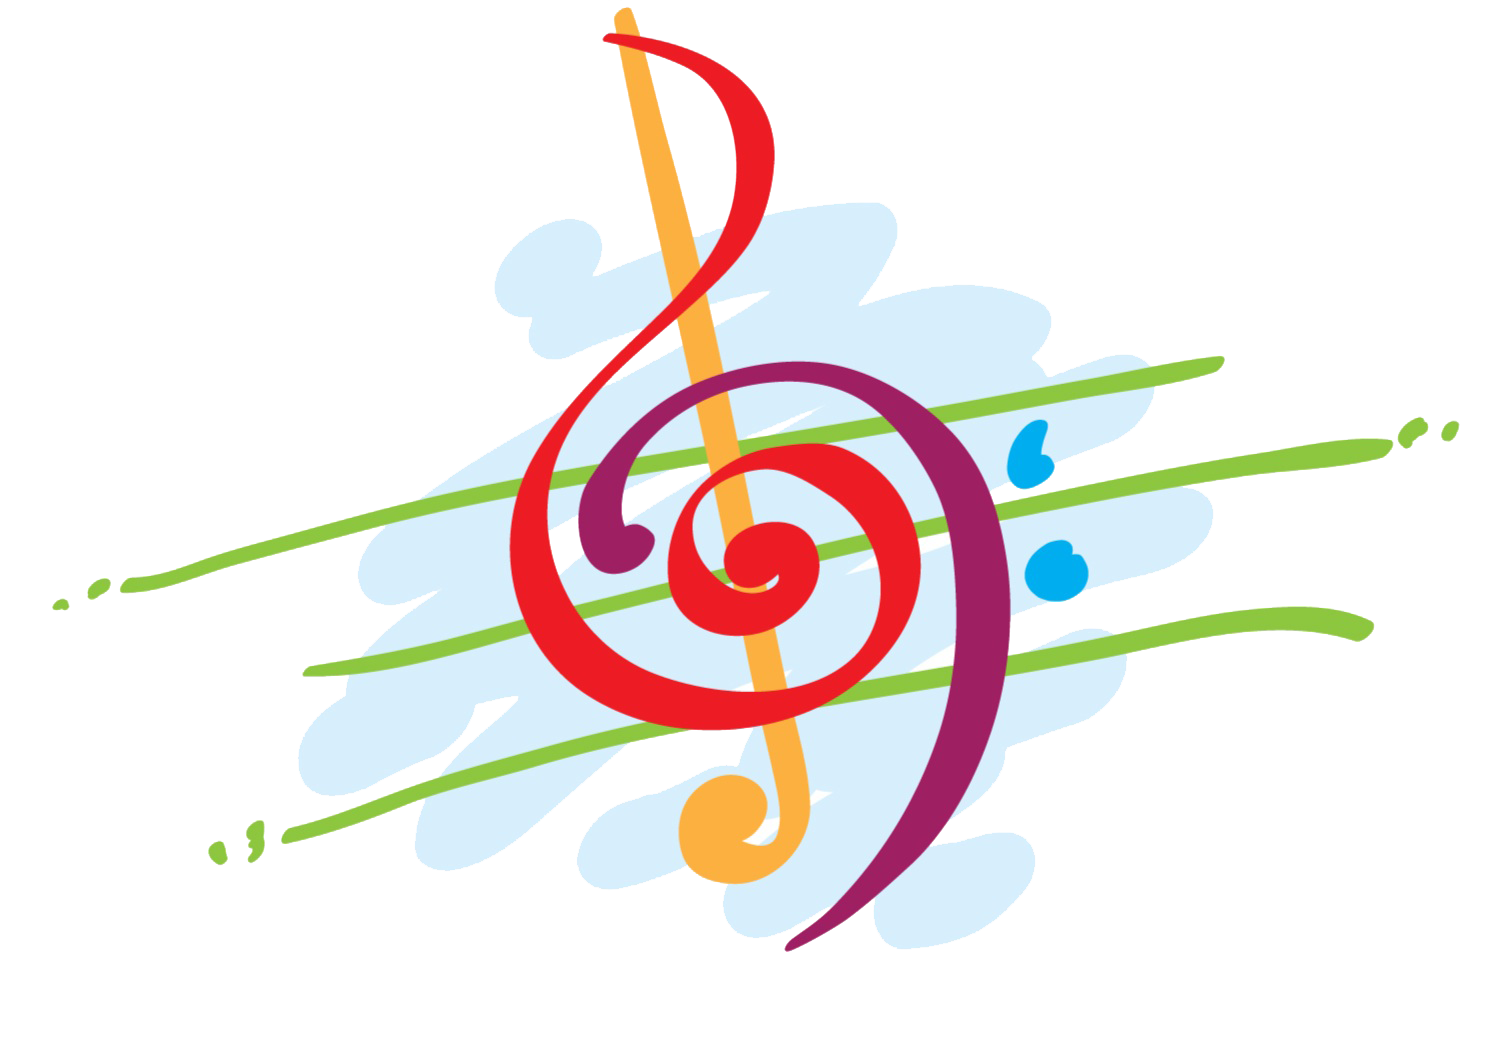 Music PNG - 1263